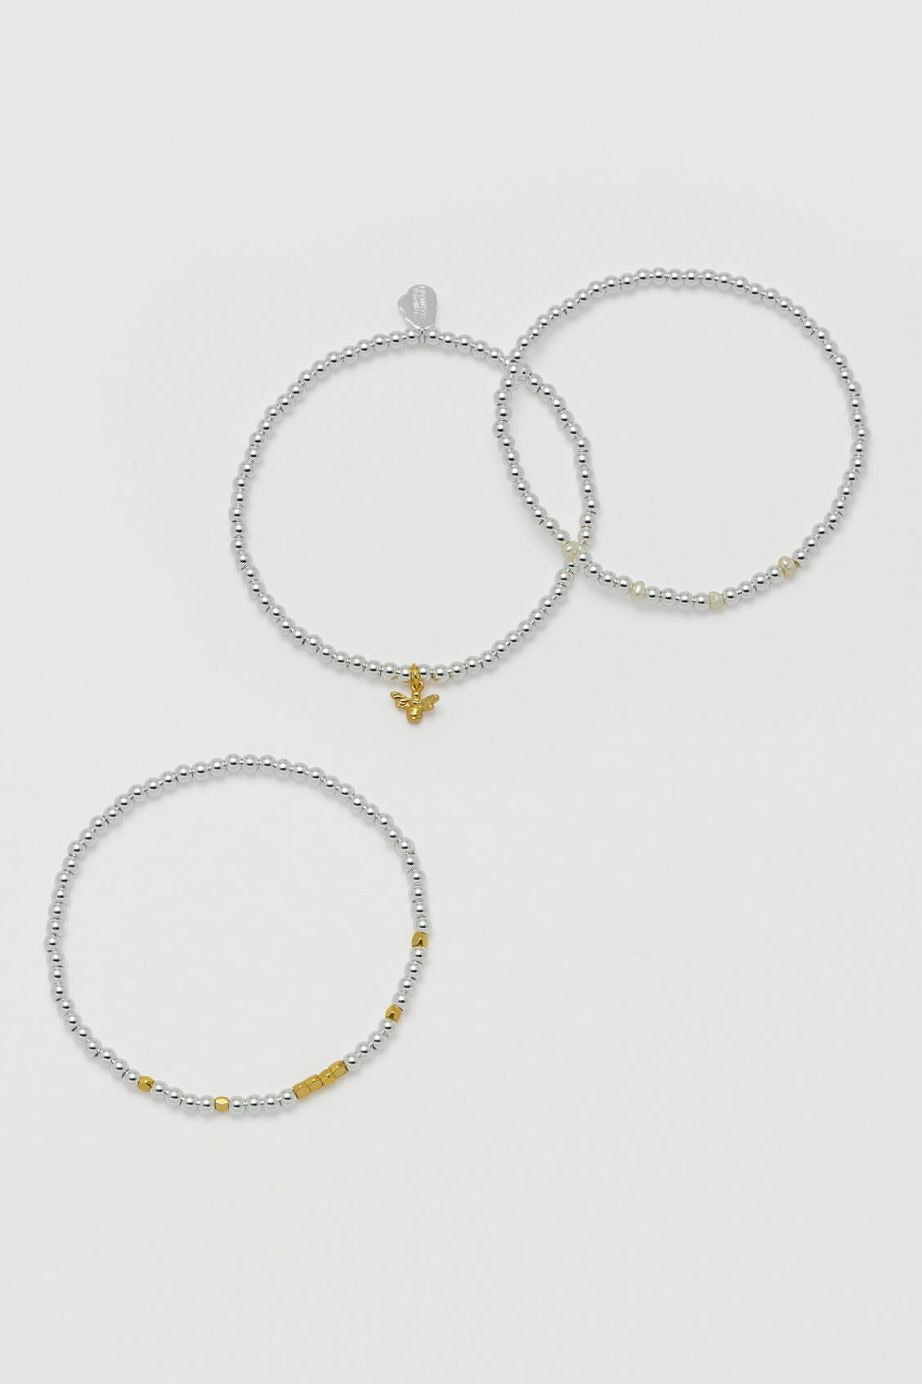 Bee Bracelet Trio Gift Set - Silver & Gold Plated